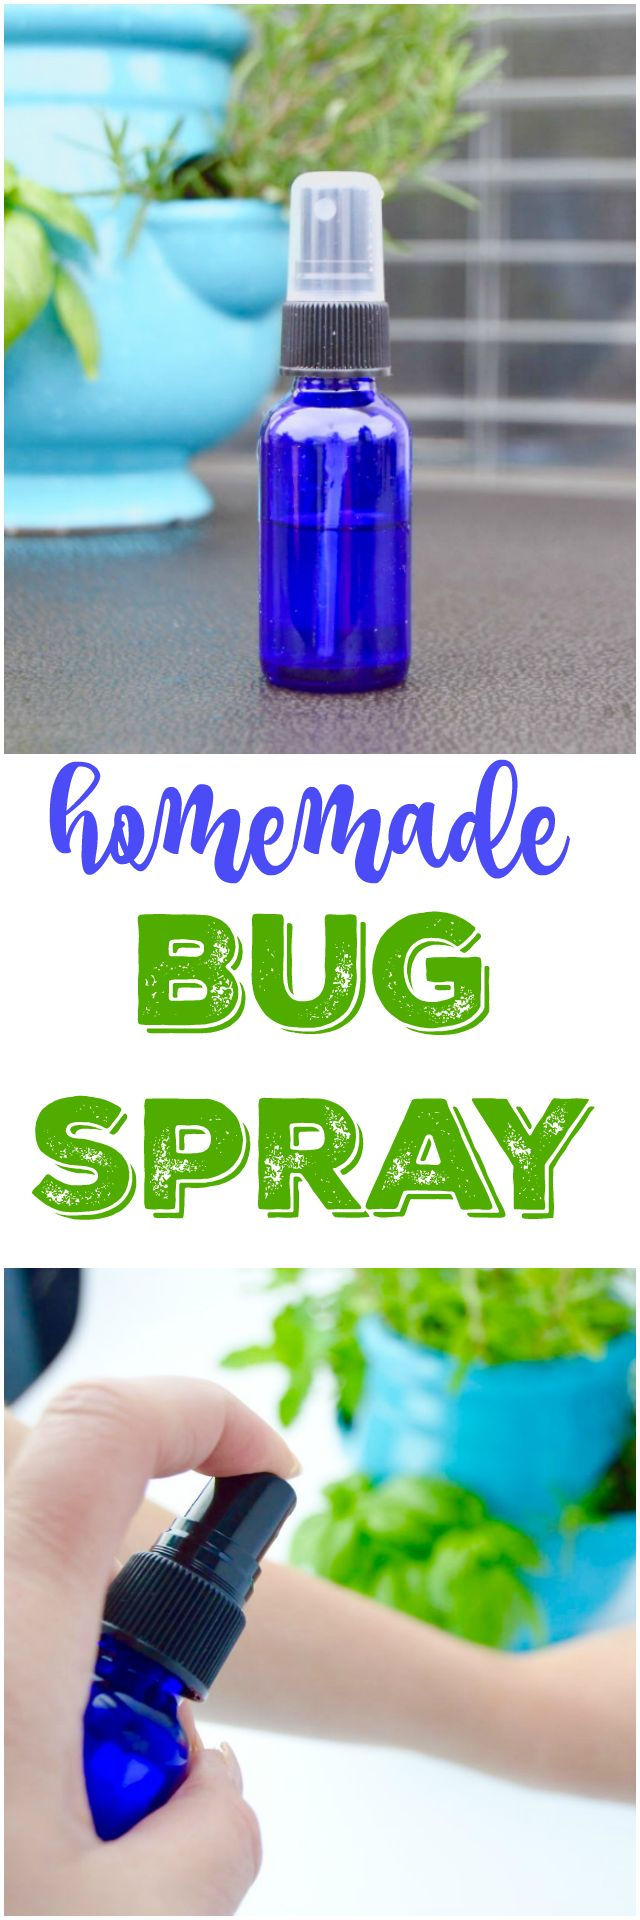 Easy homemade bug spray recipe. DIY your own chemical free bug spray that is safe for kids and the environment too. A simple recipe using household ingredients and essential oils.